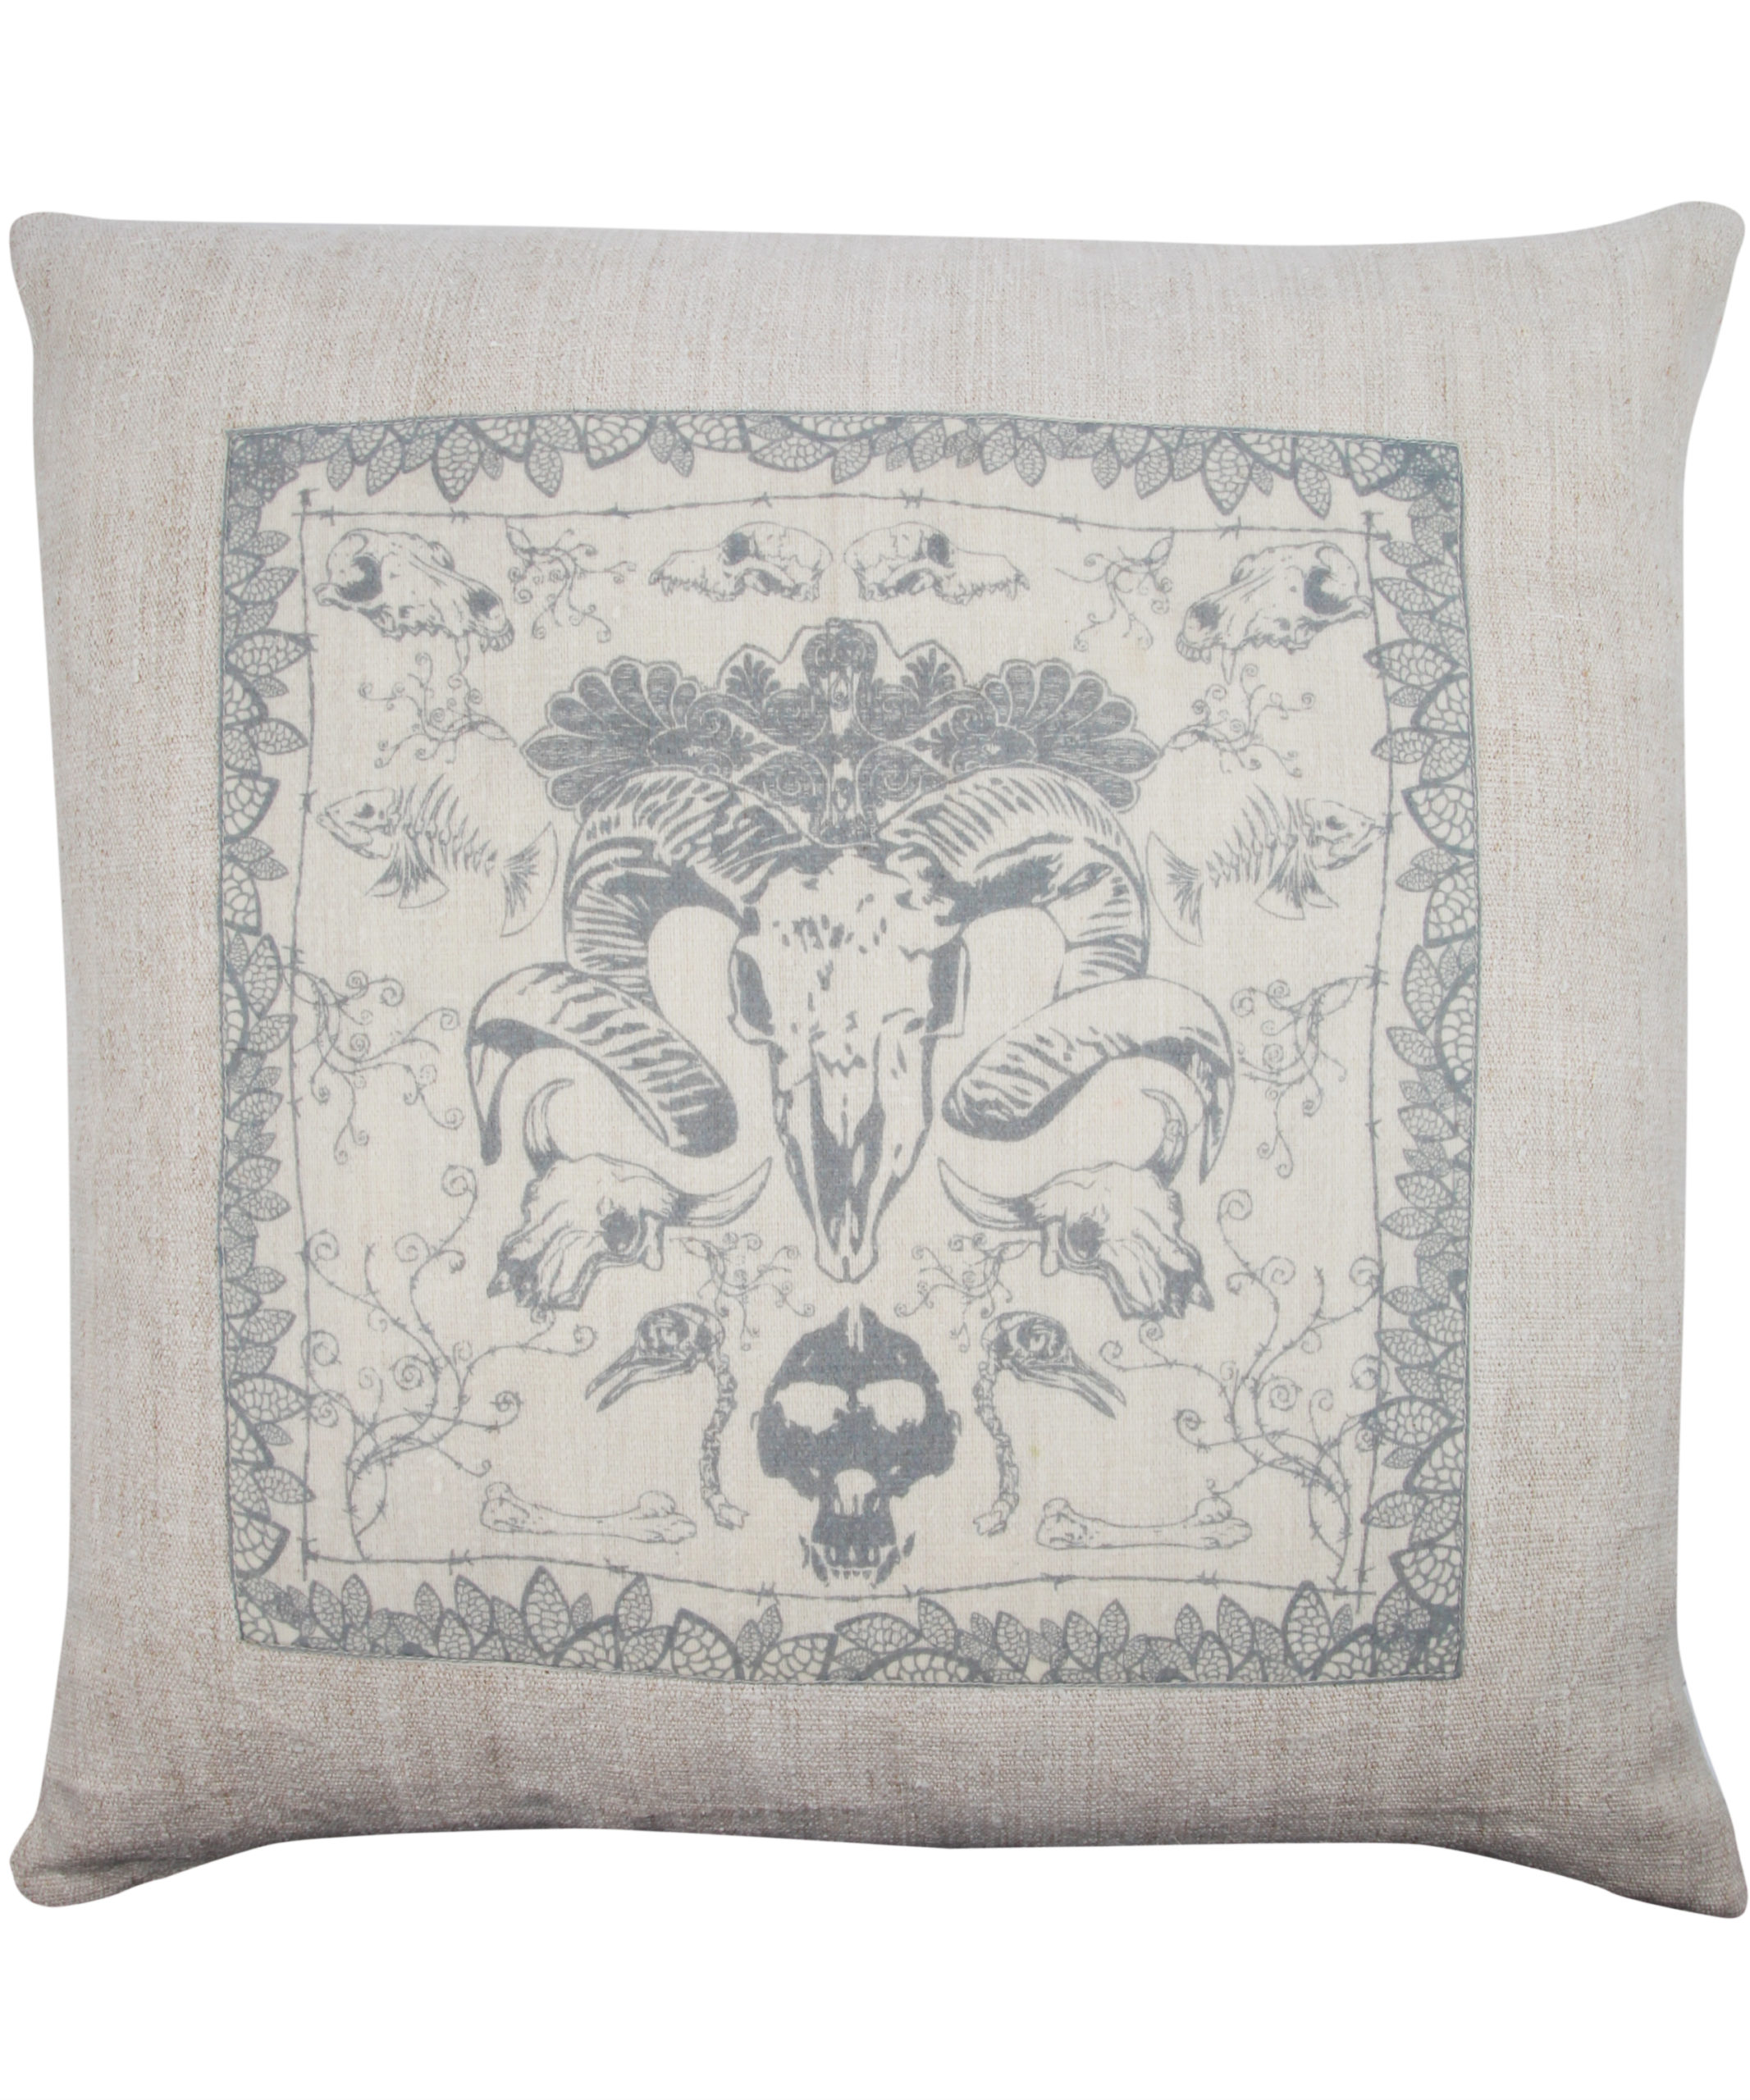 Jo Wood for Liberty -Endangered Species cushion